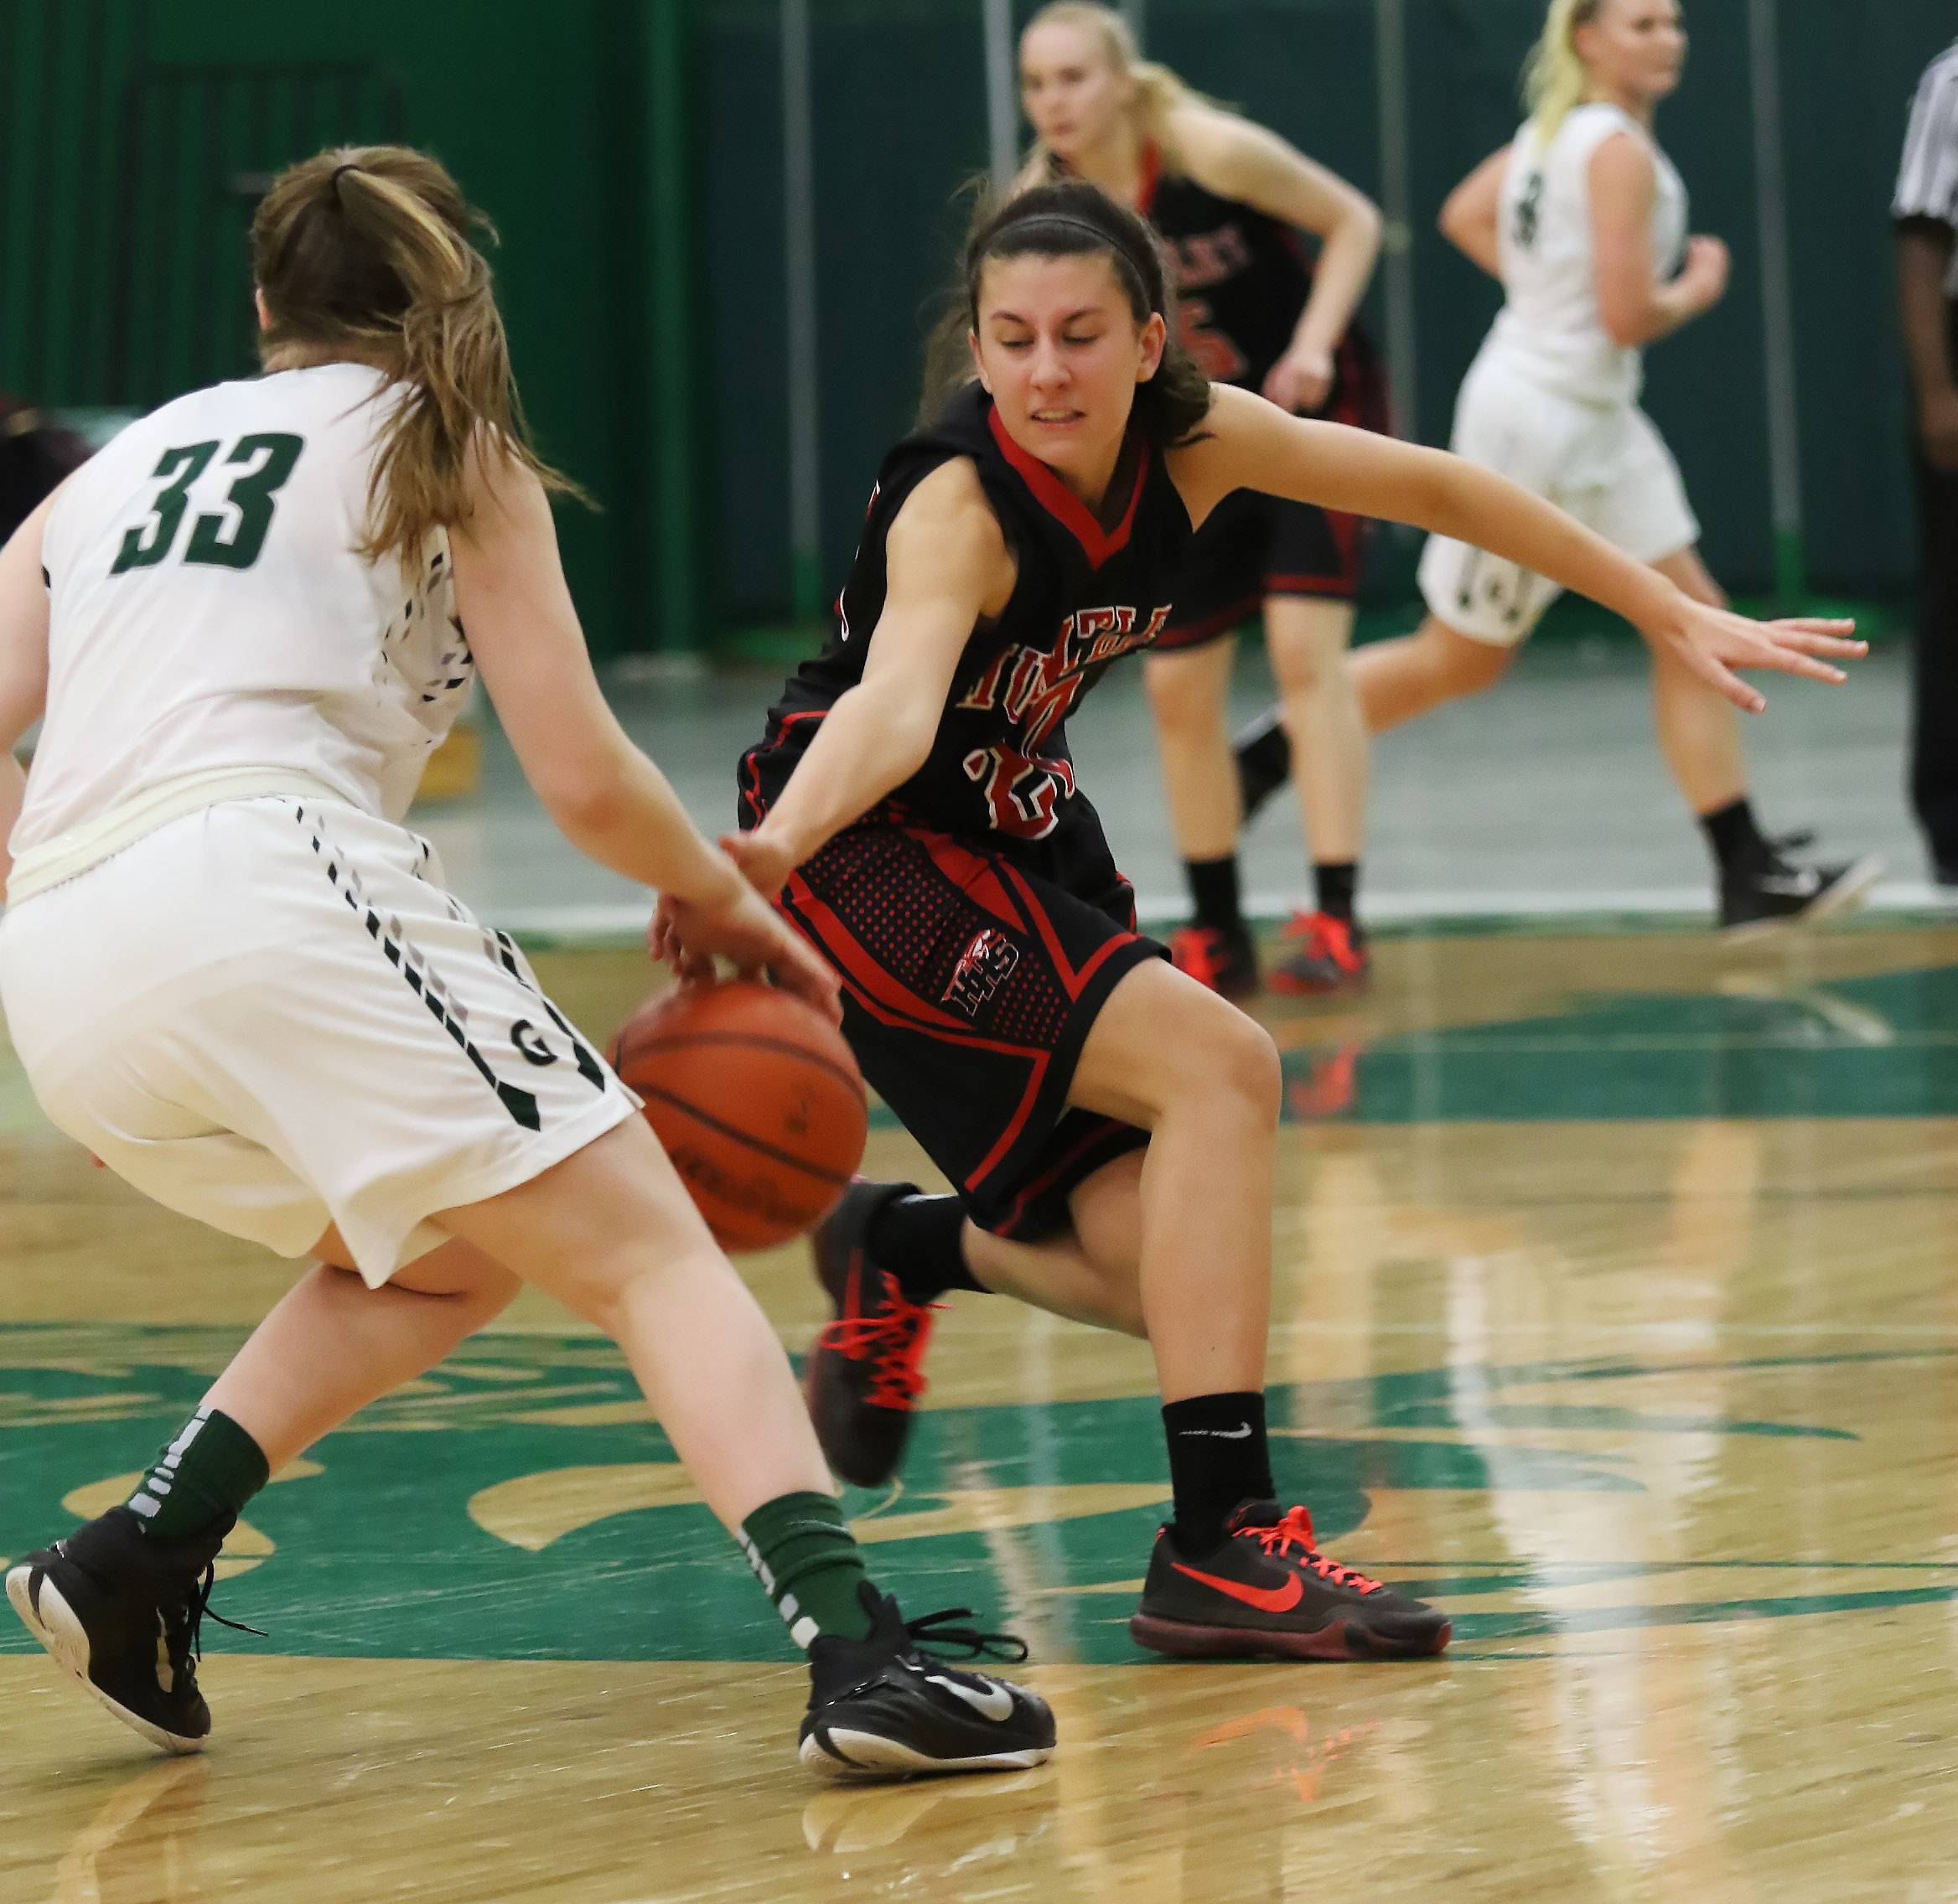 Huntley guard Mallory Moffett knocks the ball away from Grayslake Central guard Rosie Drevline during the girls high school basketball game Thursday between Huntley at Grayslake Central.